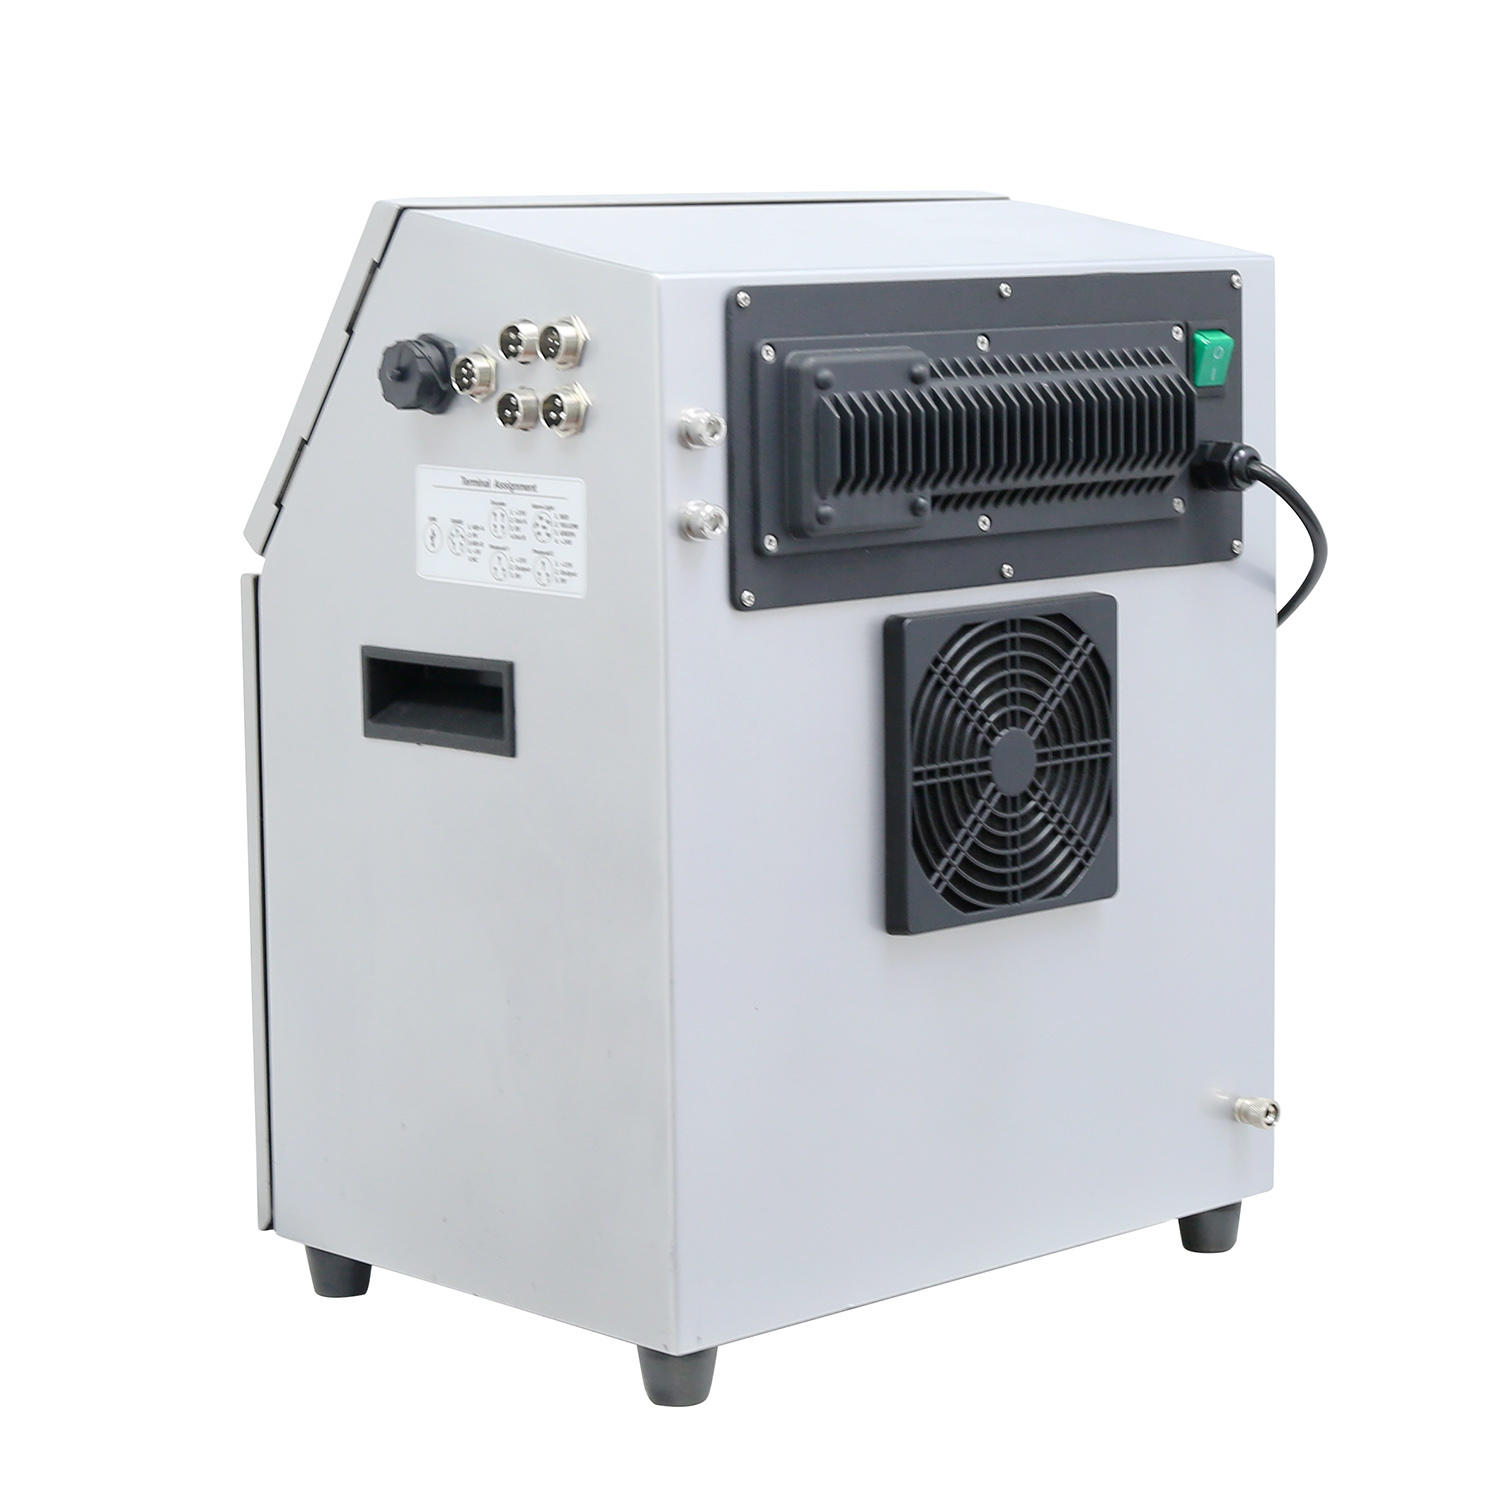 Lead Tech Lt800 Engraving Printer Small Character Printer